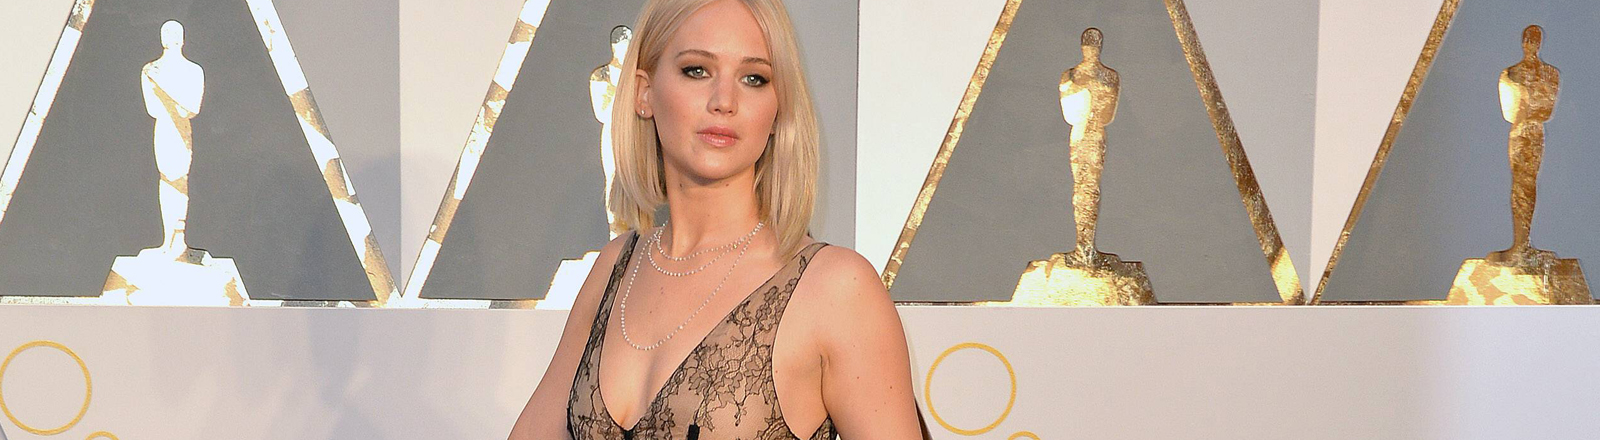 Jennifer Lawrence bei den Academy Awards 2016